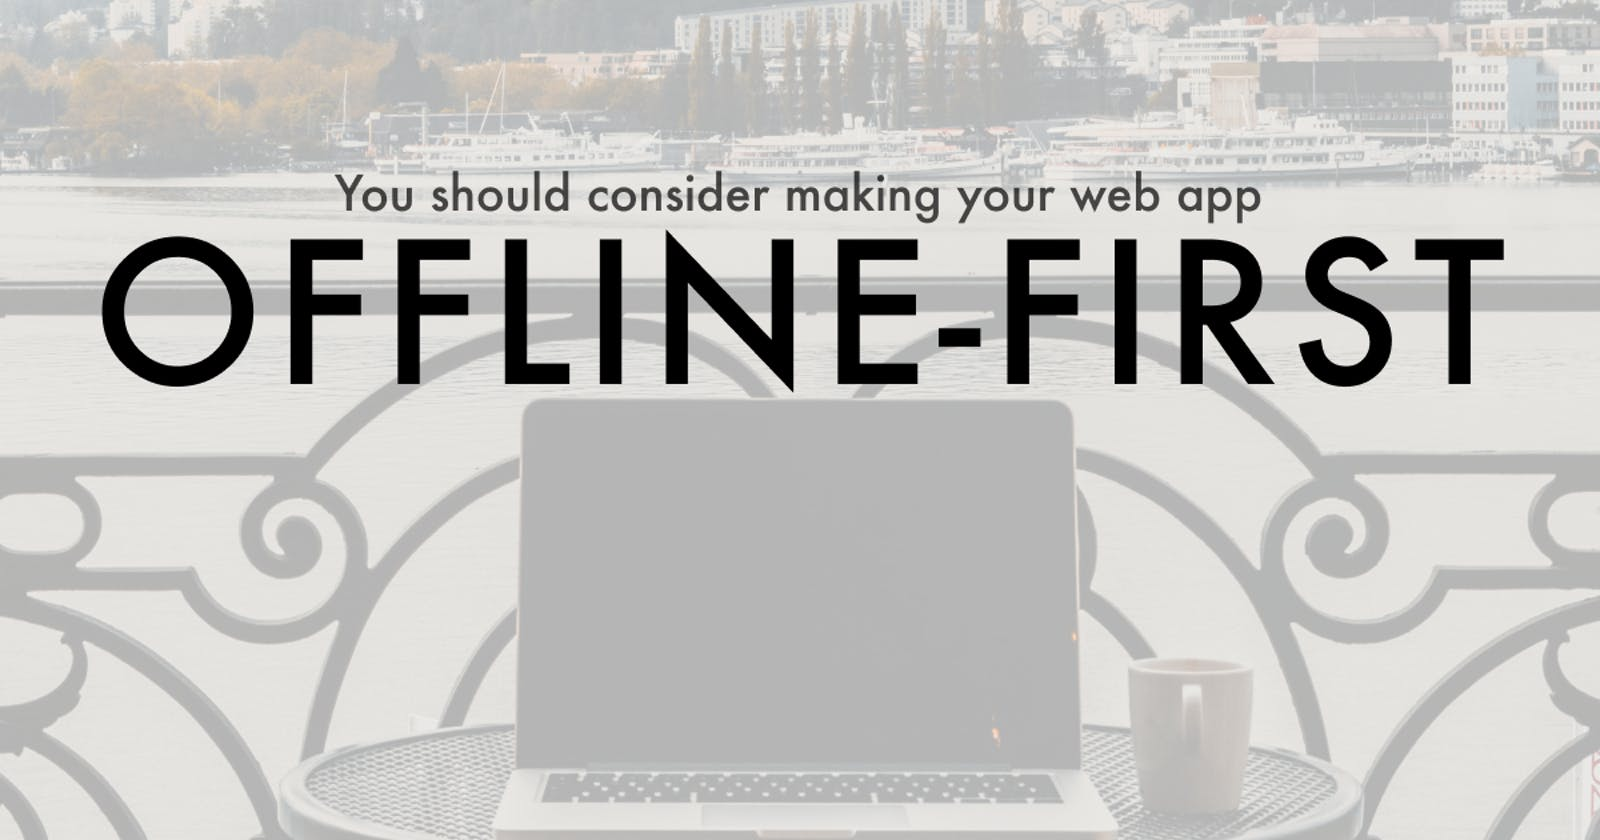 You should consider making your web app offline-first